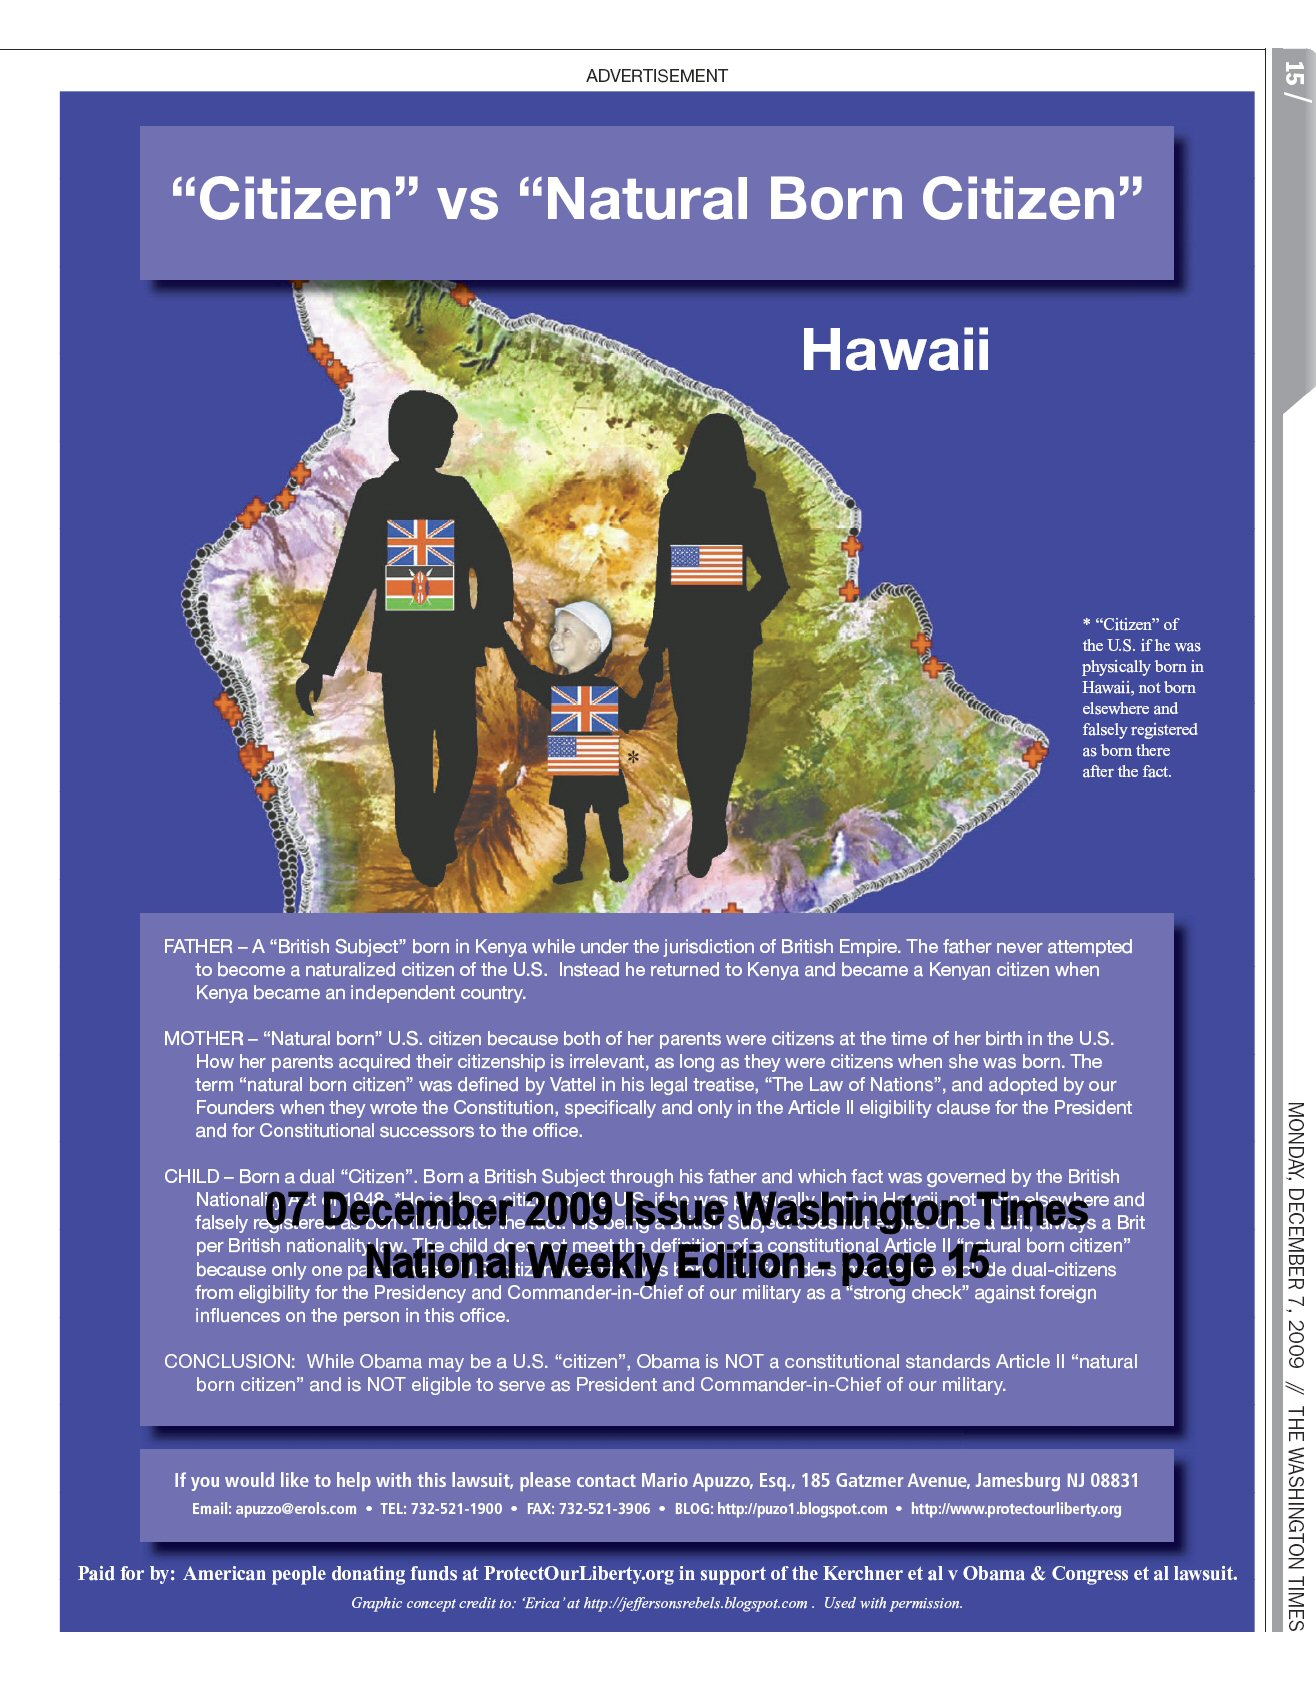 Citizen vs Natural Born Citizen